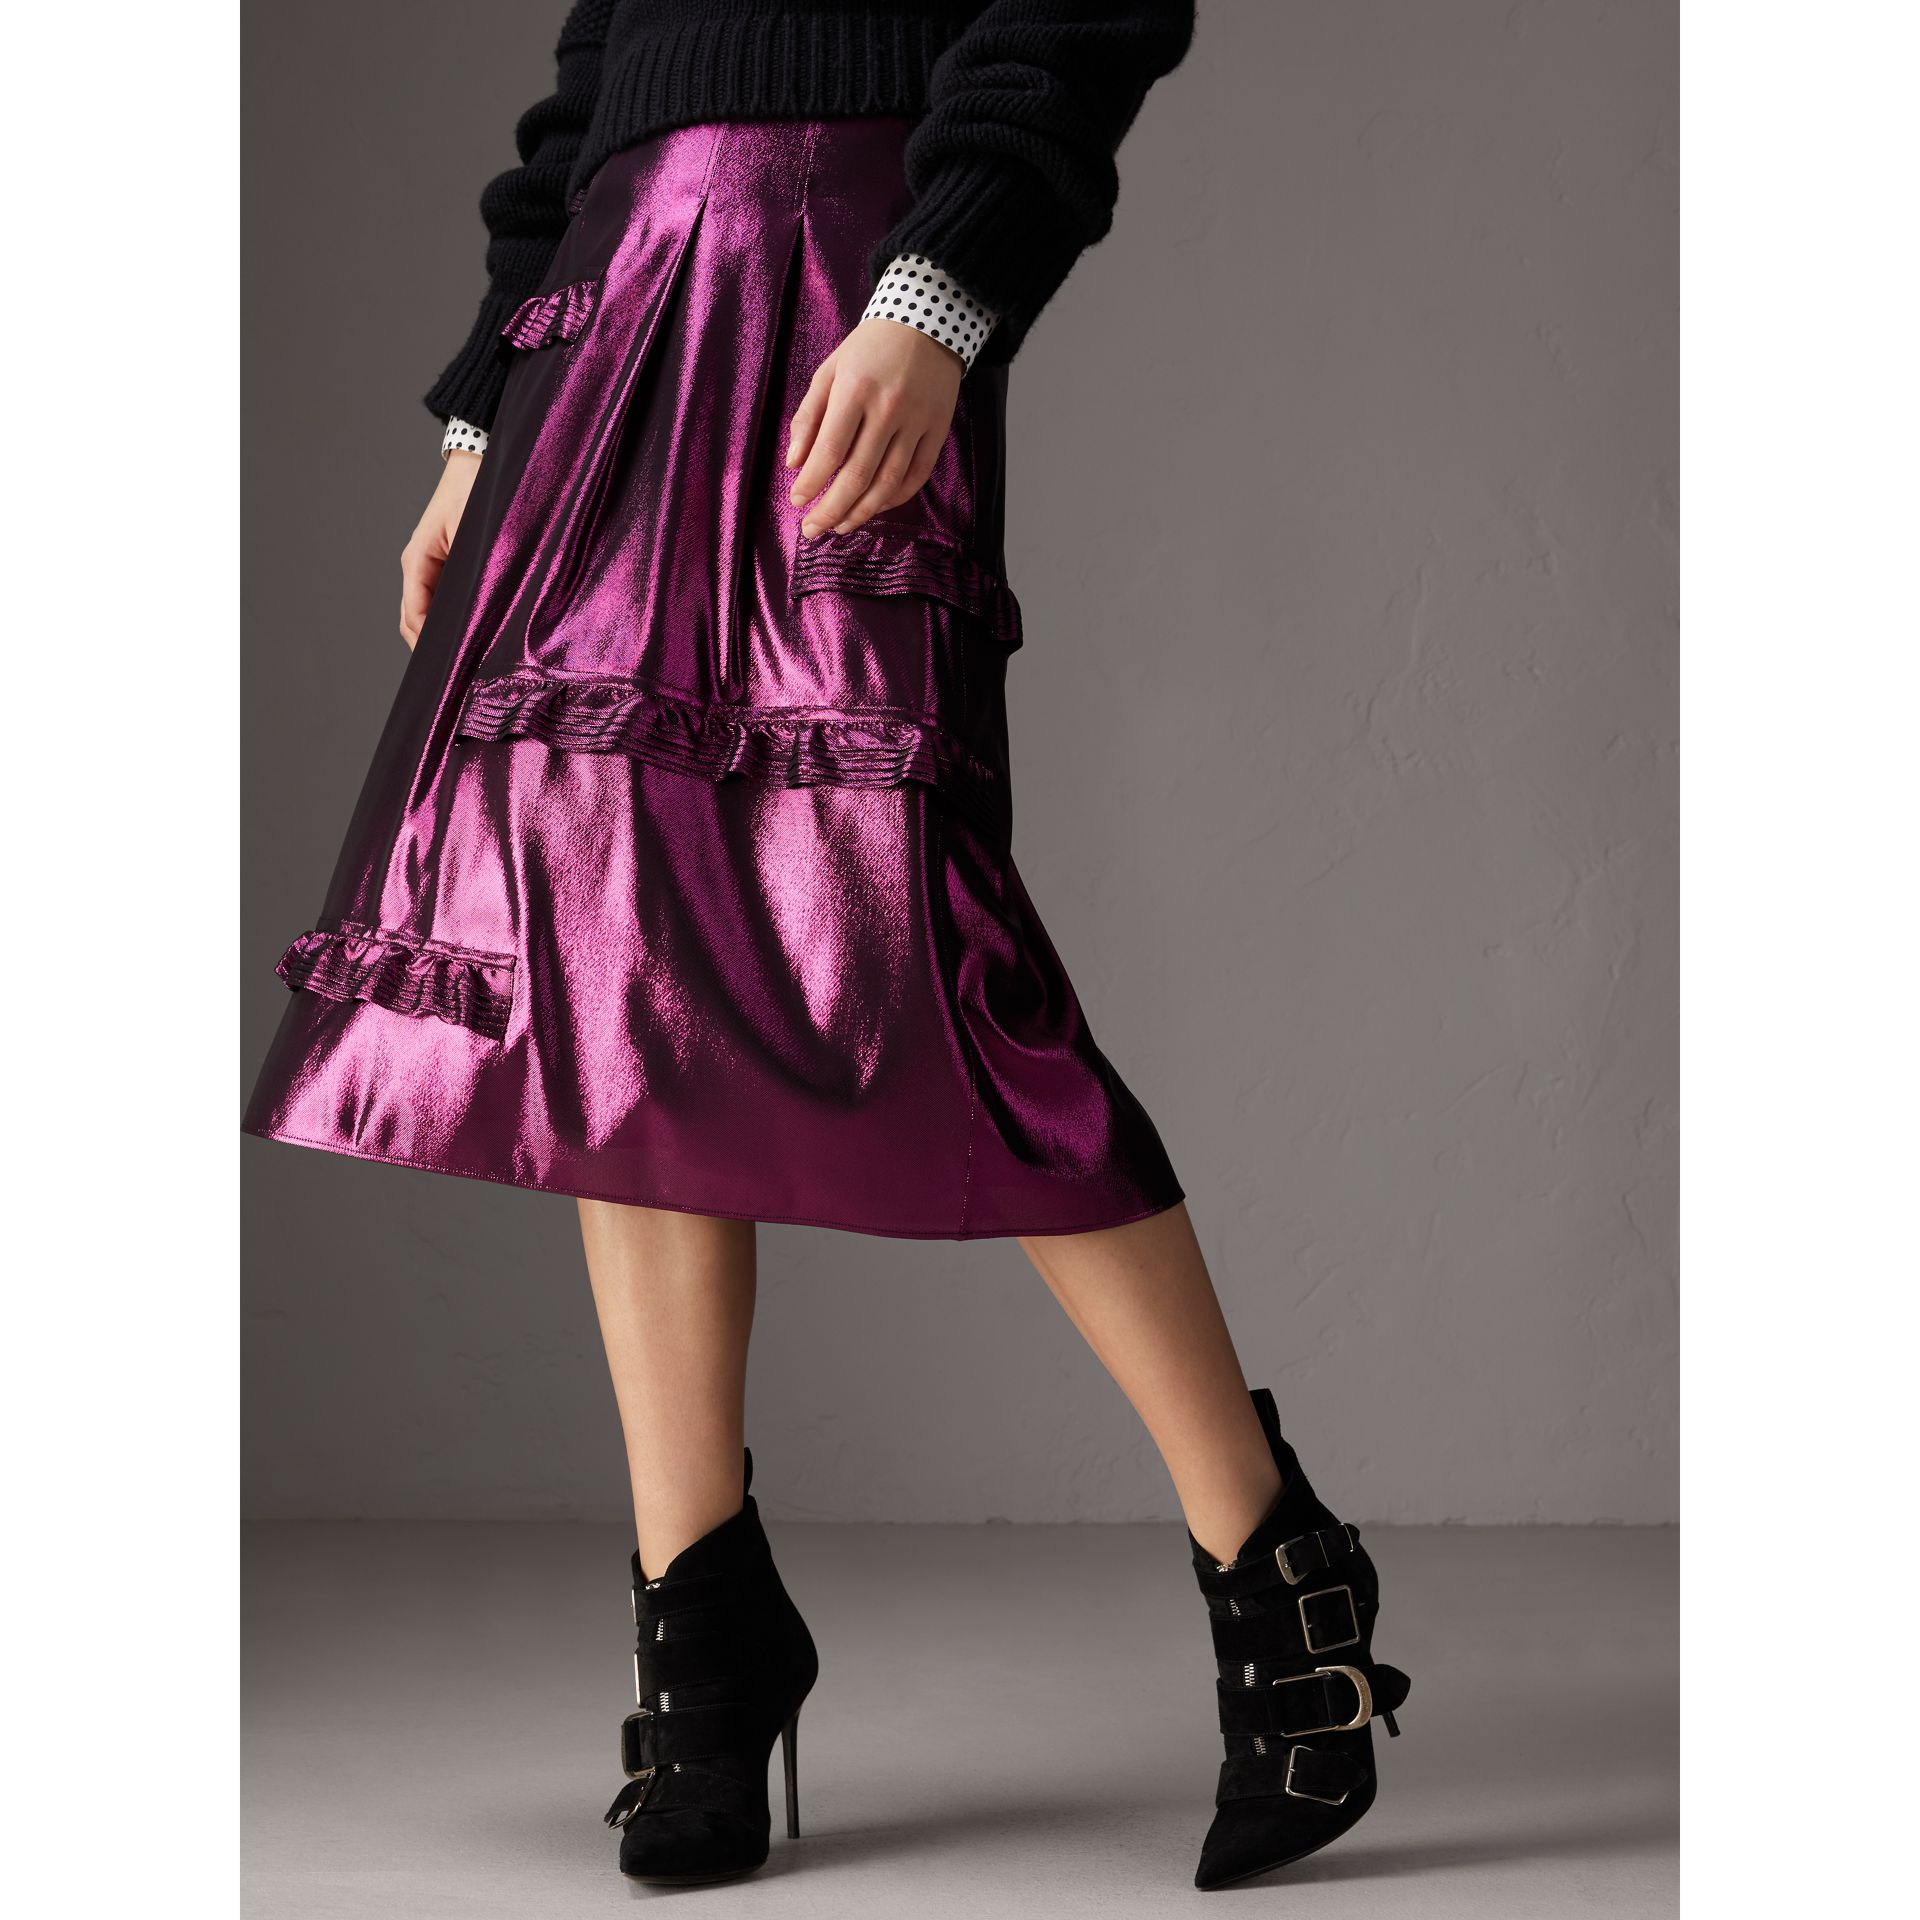 Ruffle Detail Lamé Skirt in Bright Fuchsia - Women | Burberry - gallery image 4